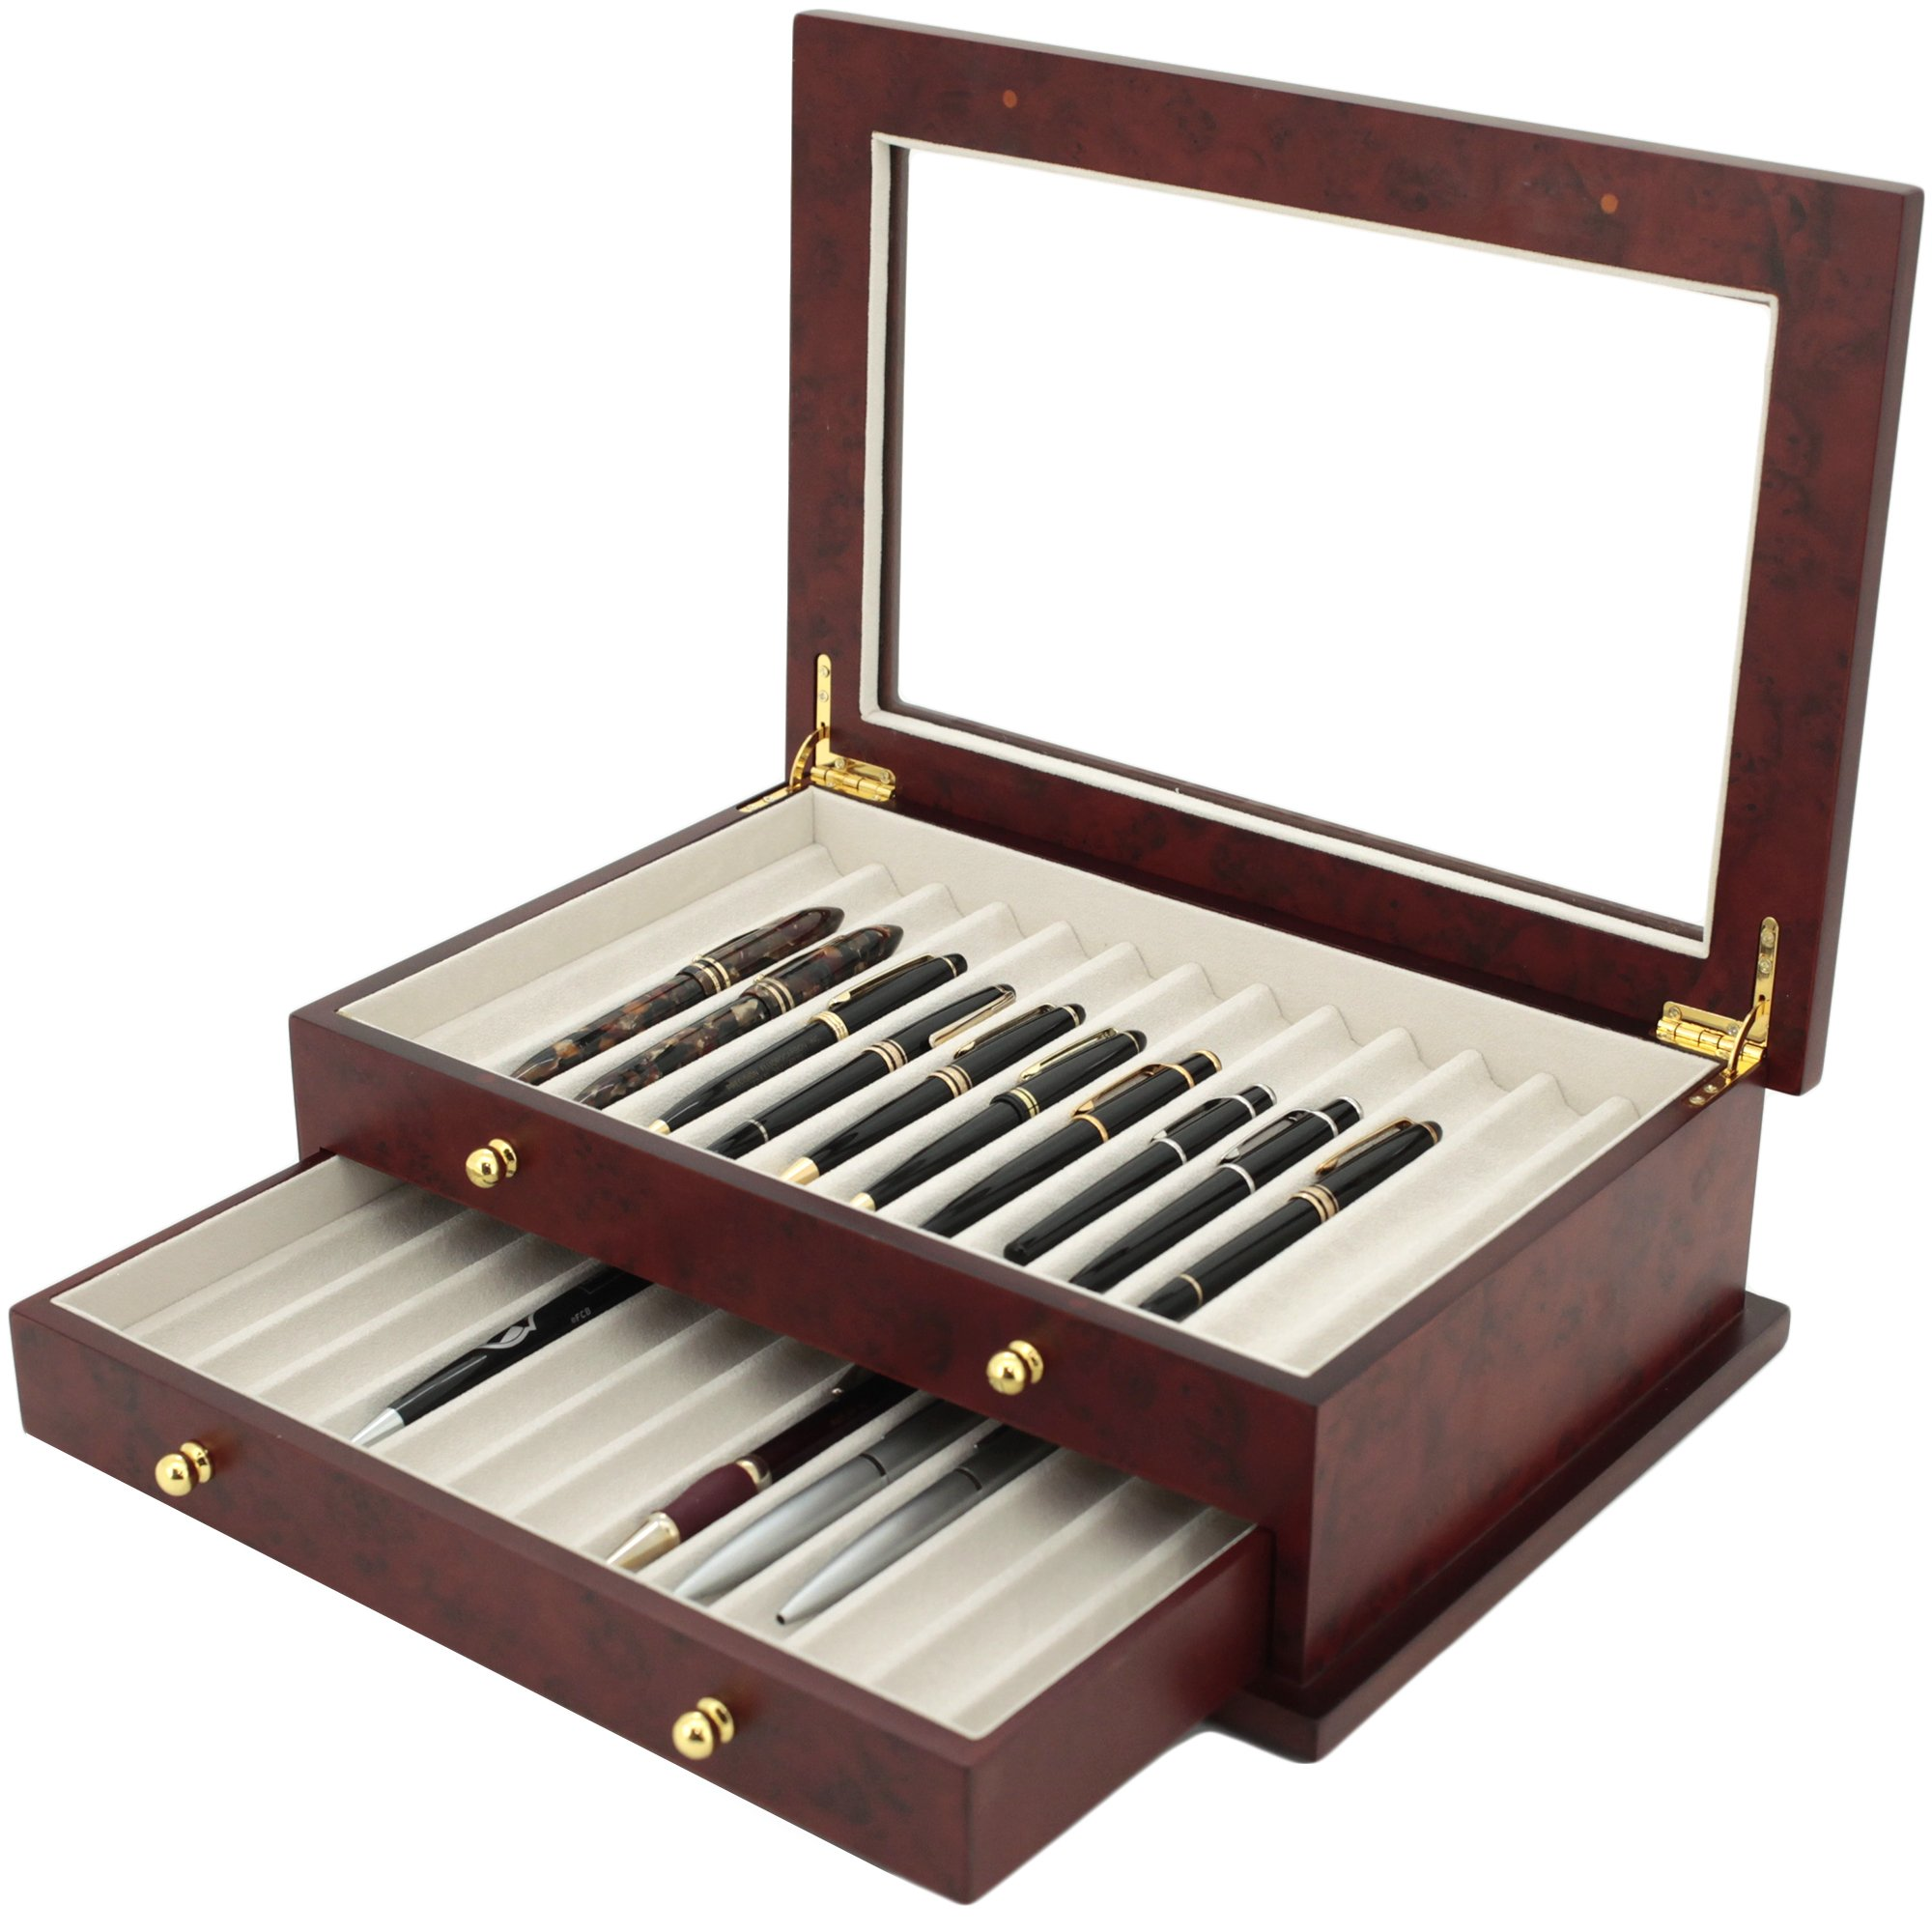 Pen Box 26 Fountain Pens Writing Instruments Wood Constructed Glass Display Case (Burlwood) by Tech Swiss (Image #1)